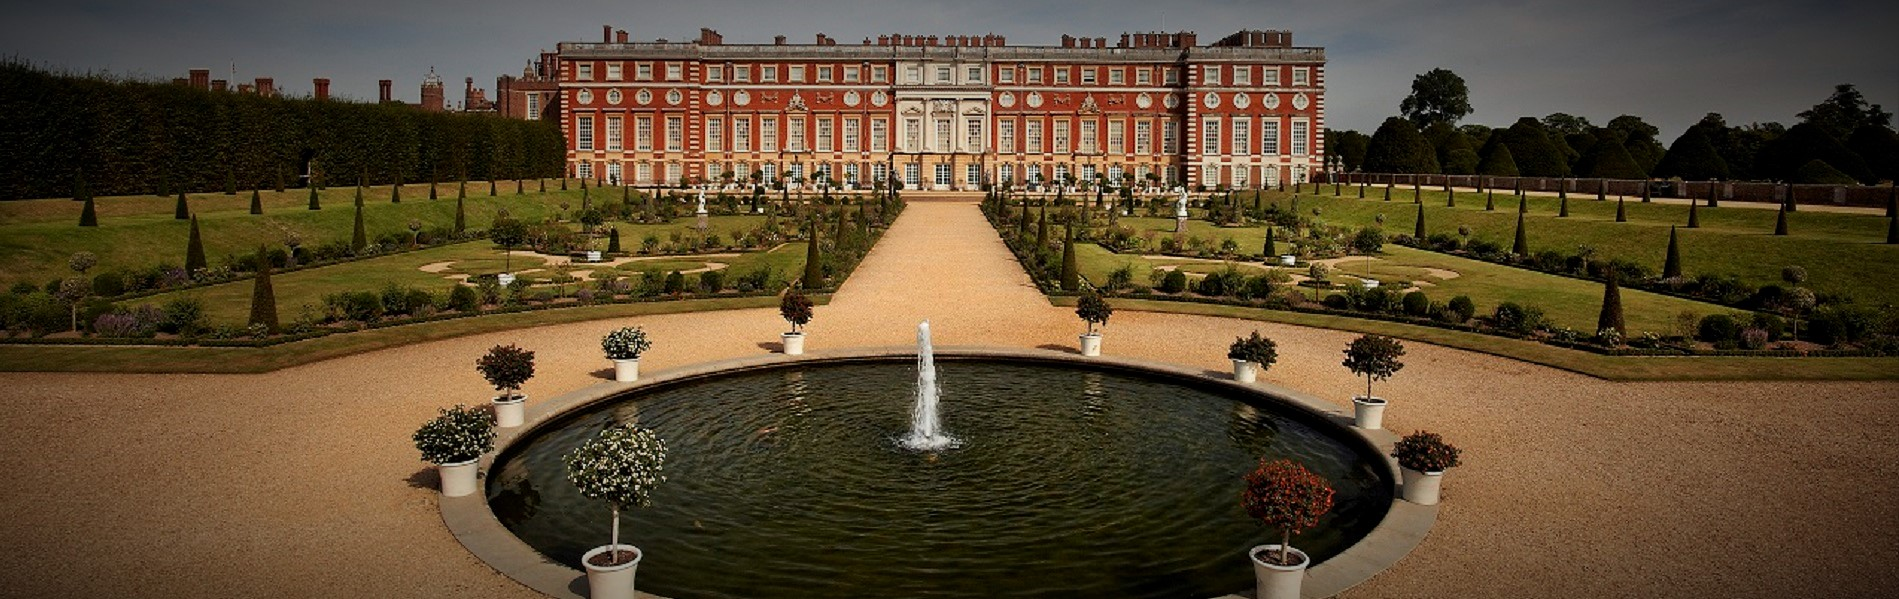 Tours of England - Hampton Court